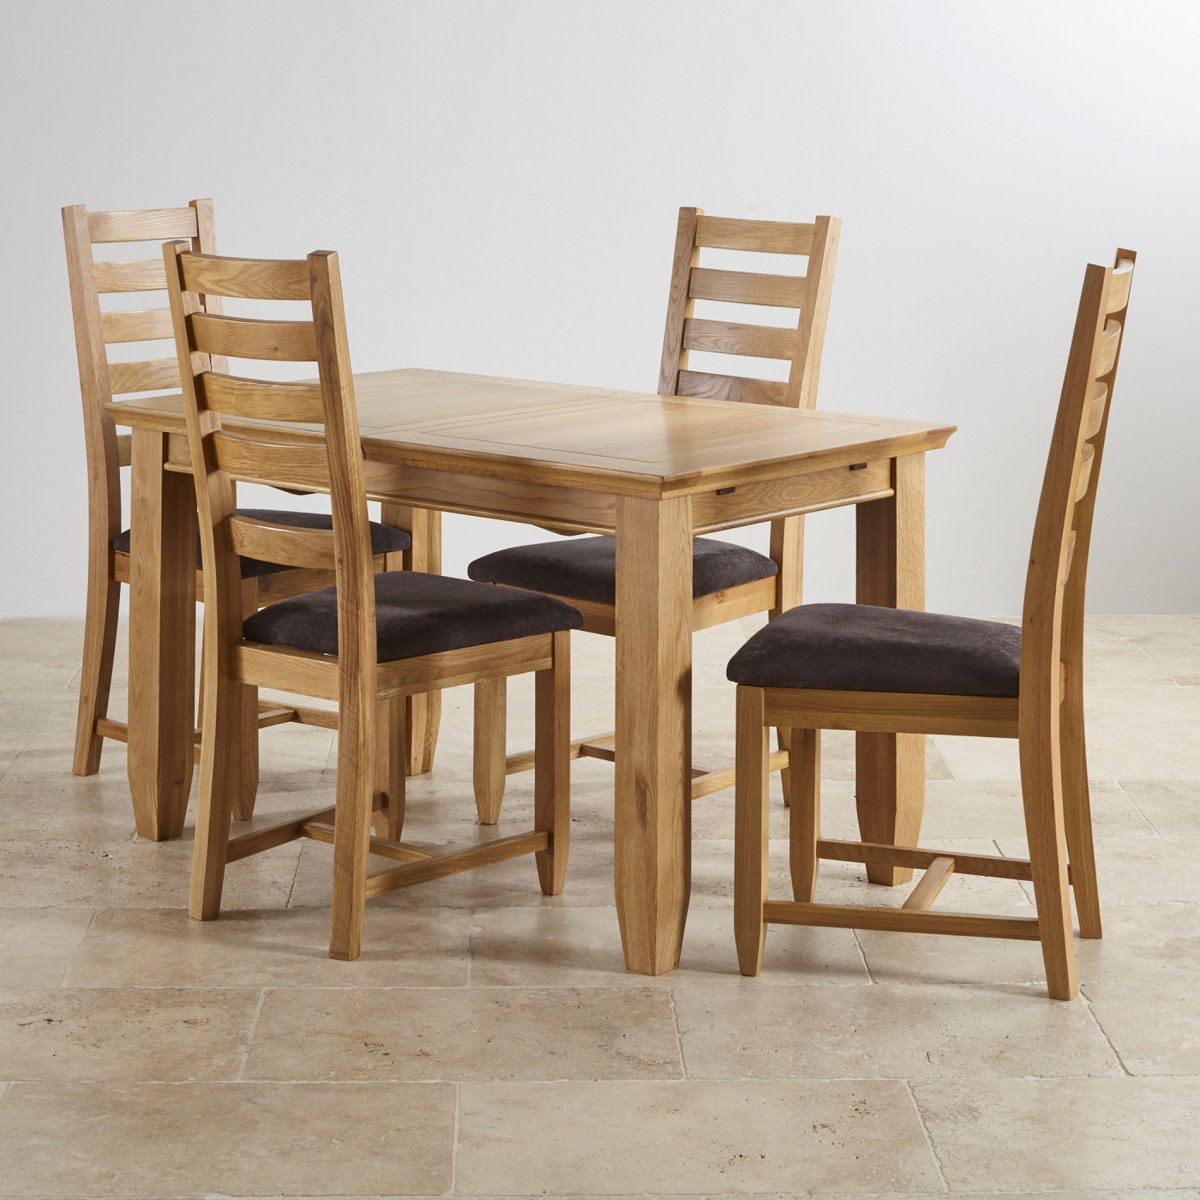 2 x 4 dining chairs cheap camping classic extending set in oak table 43 6